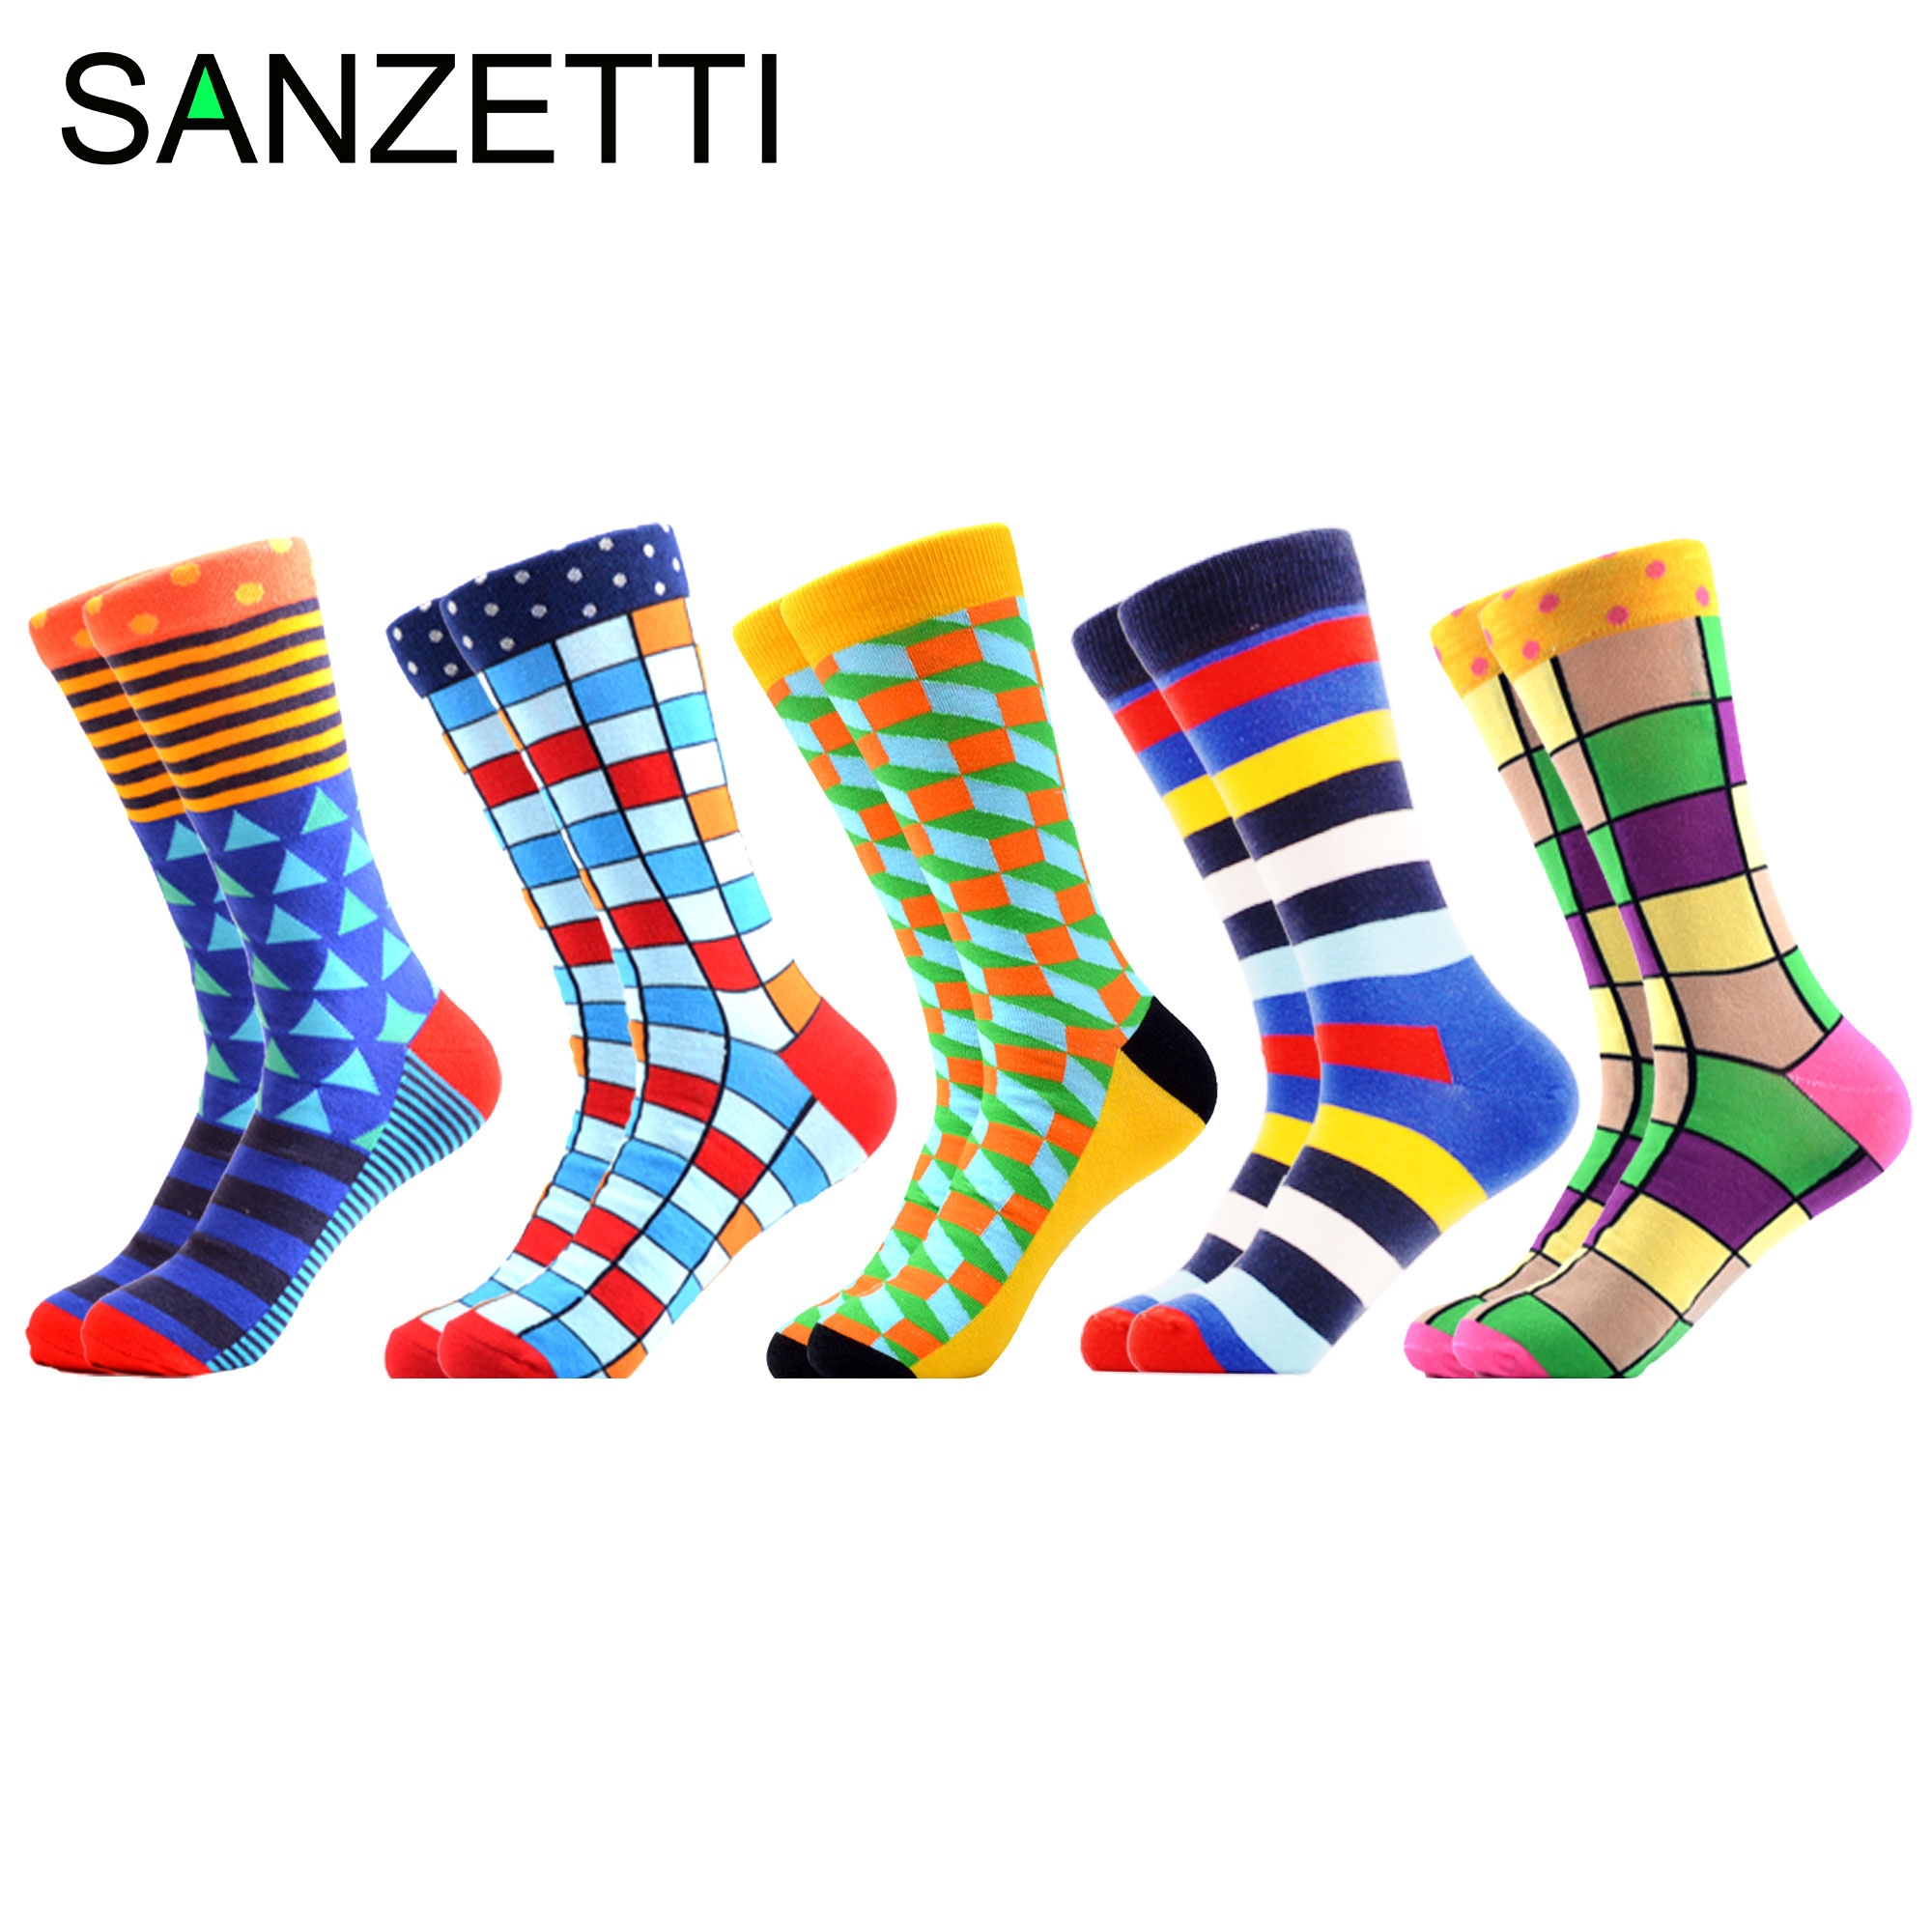 SANZETTI Popular 5 Pairs Of Leisure Crew Socks Hip-hop Novelty Personalized Colorful Design Combed Cotton Socks Gift Gym Socks